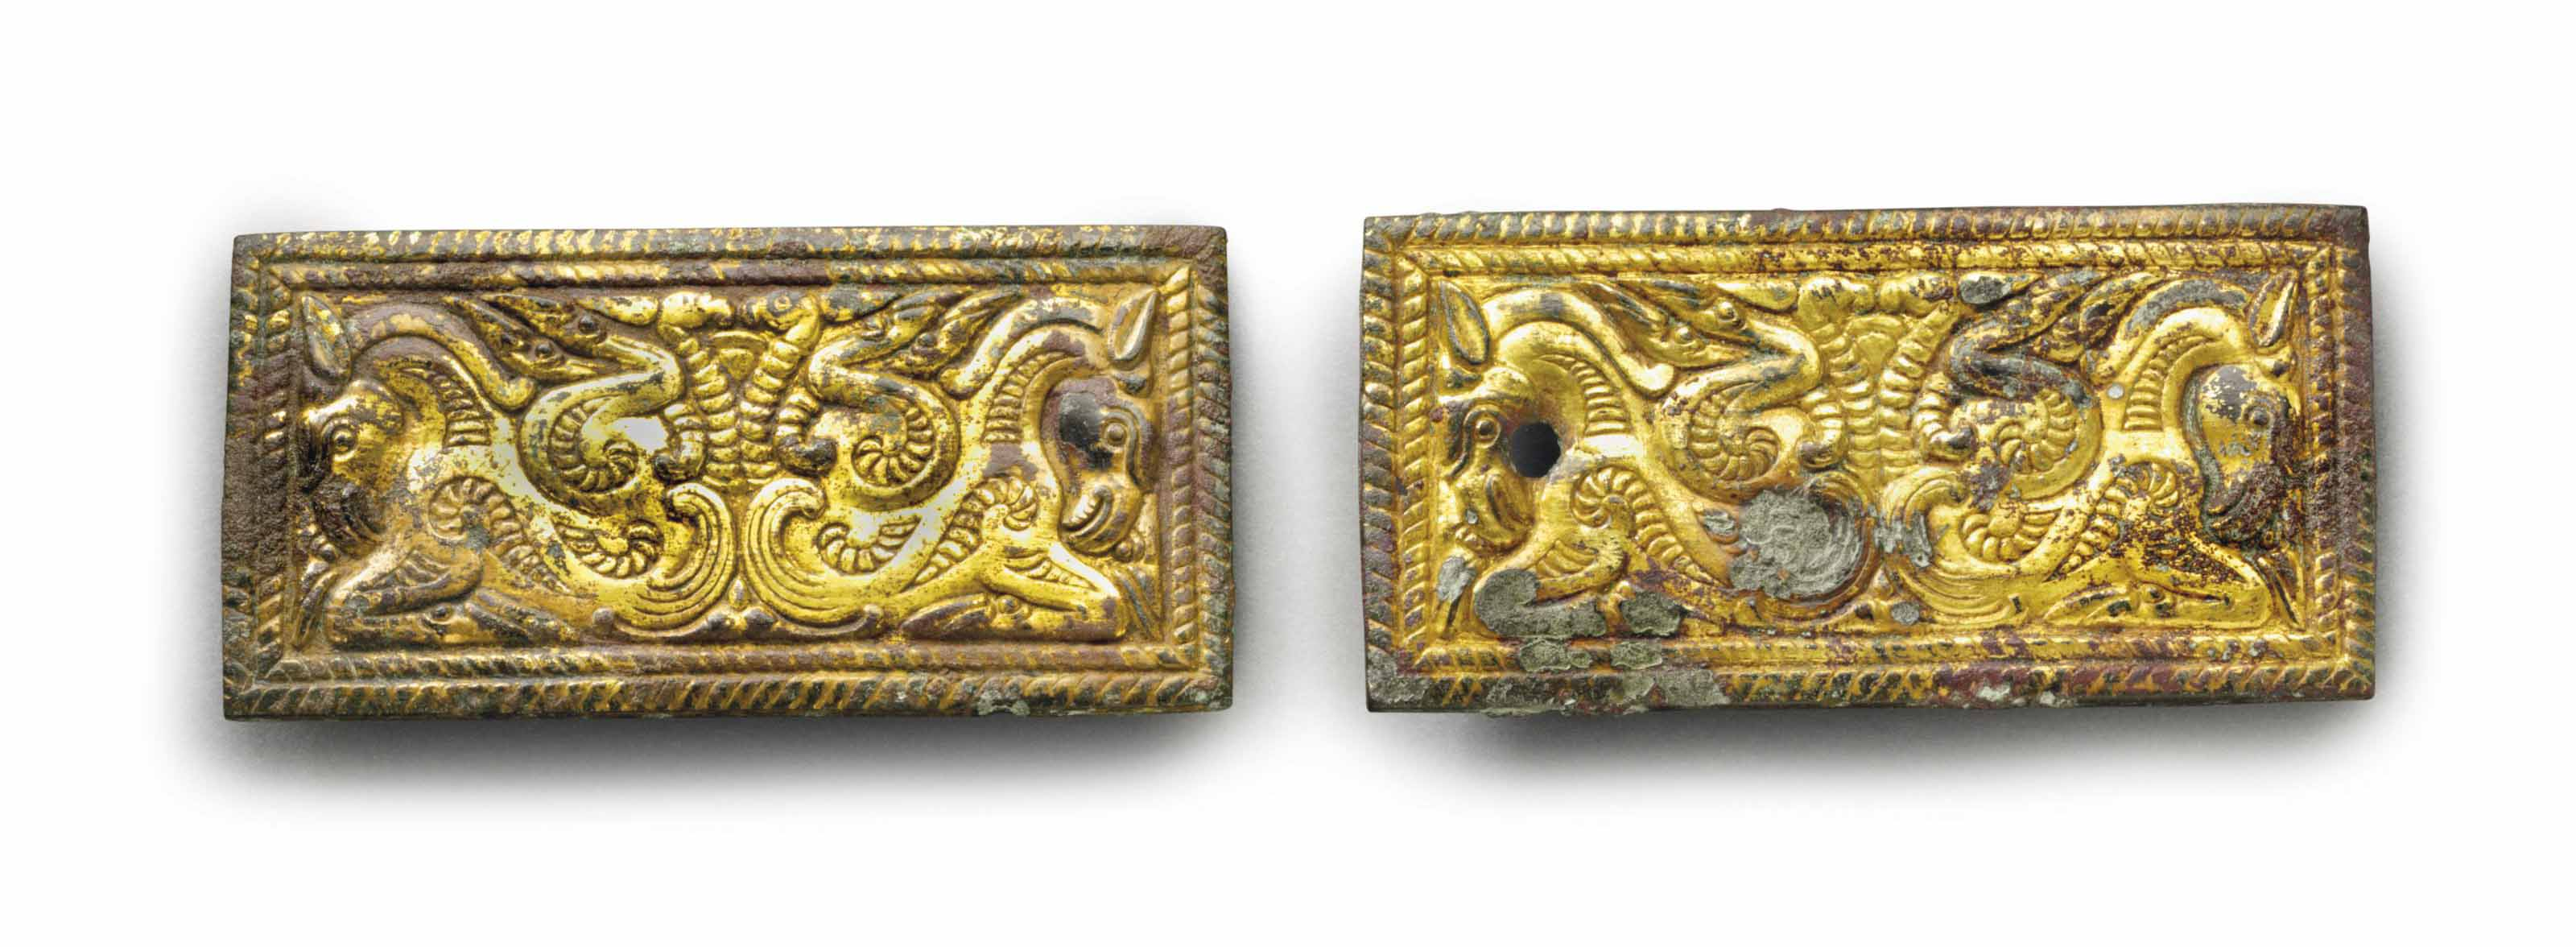 A PAIR OF GILT-BRONZE RECTANGU